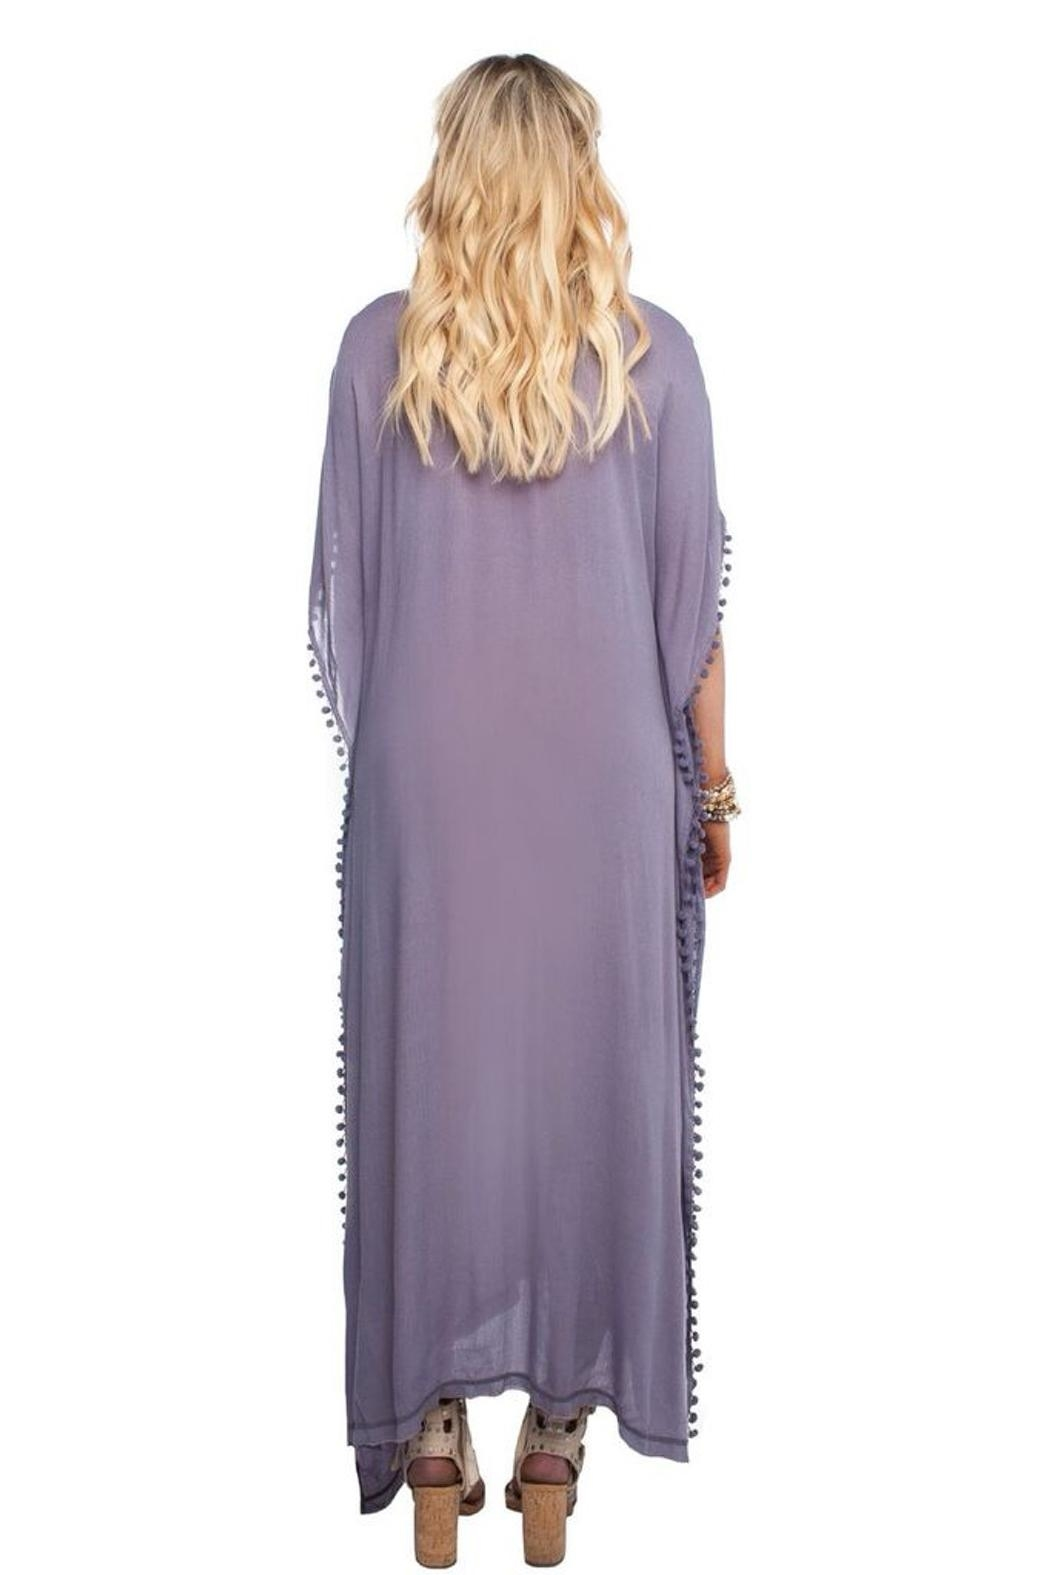 Buddy Love Zora Maxi Dress - Side Cropped Image